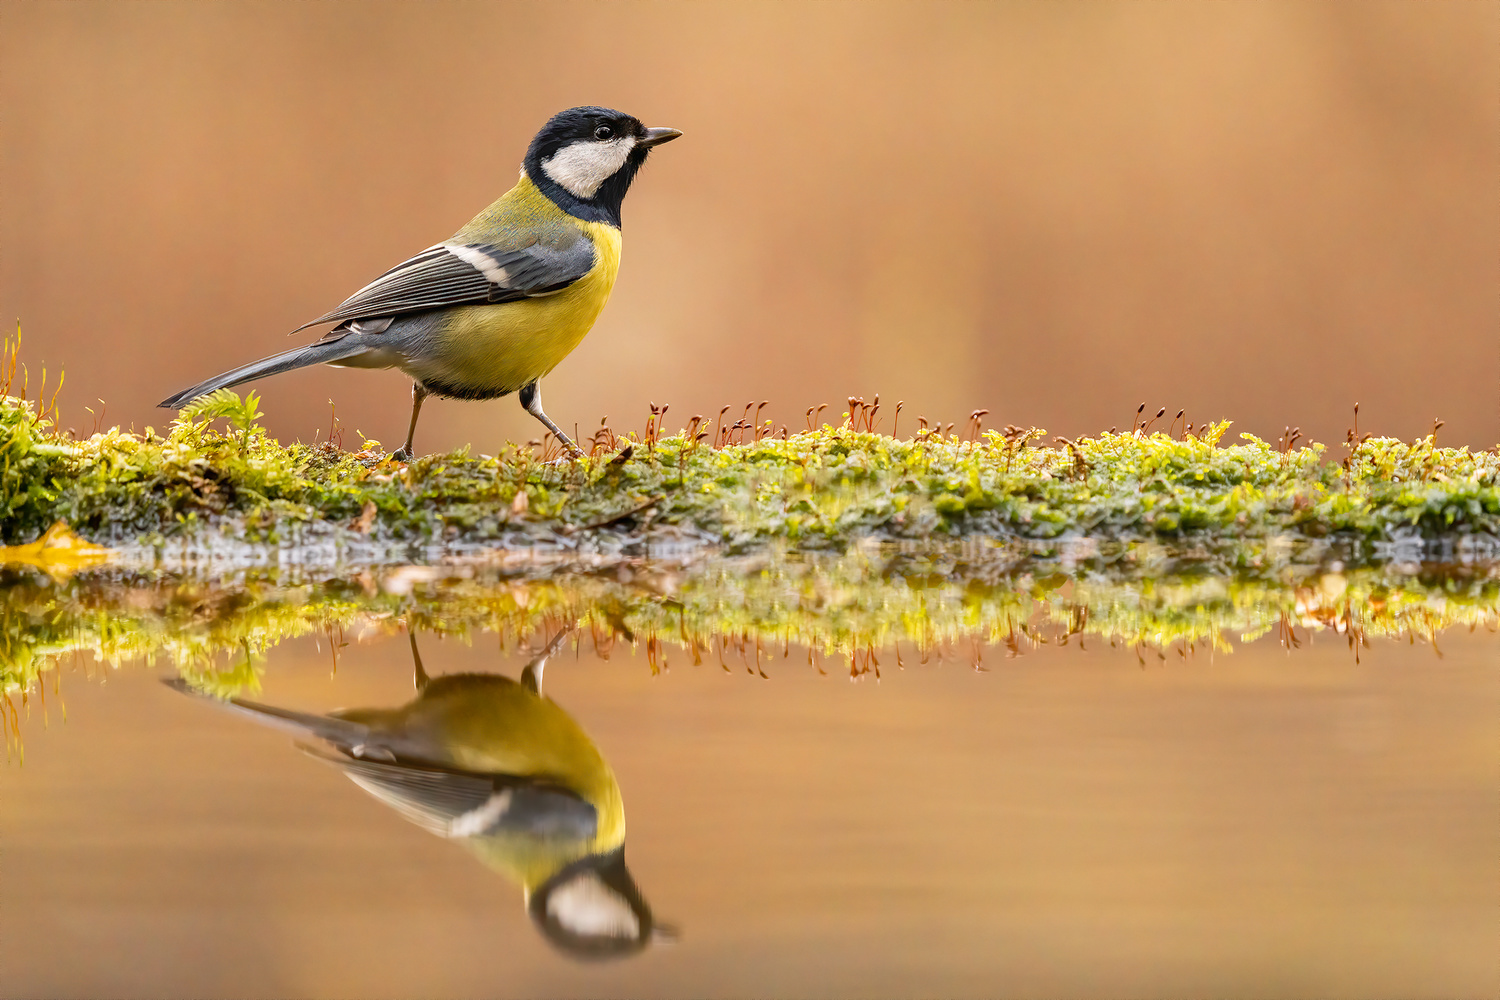 The great tit (Parus major) by Danijel Turnšek